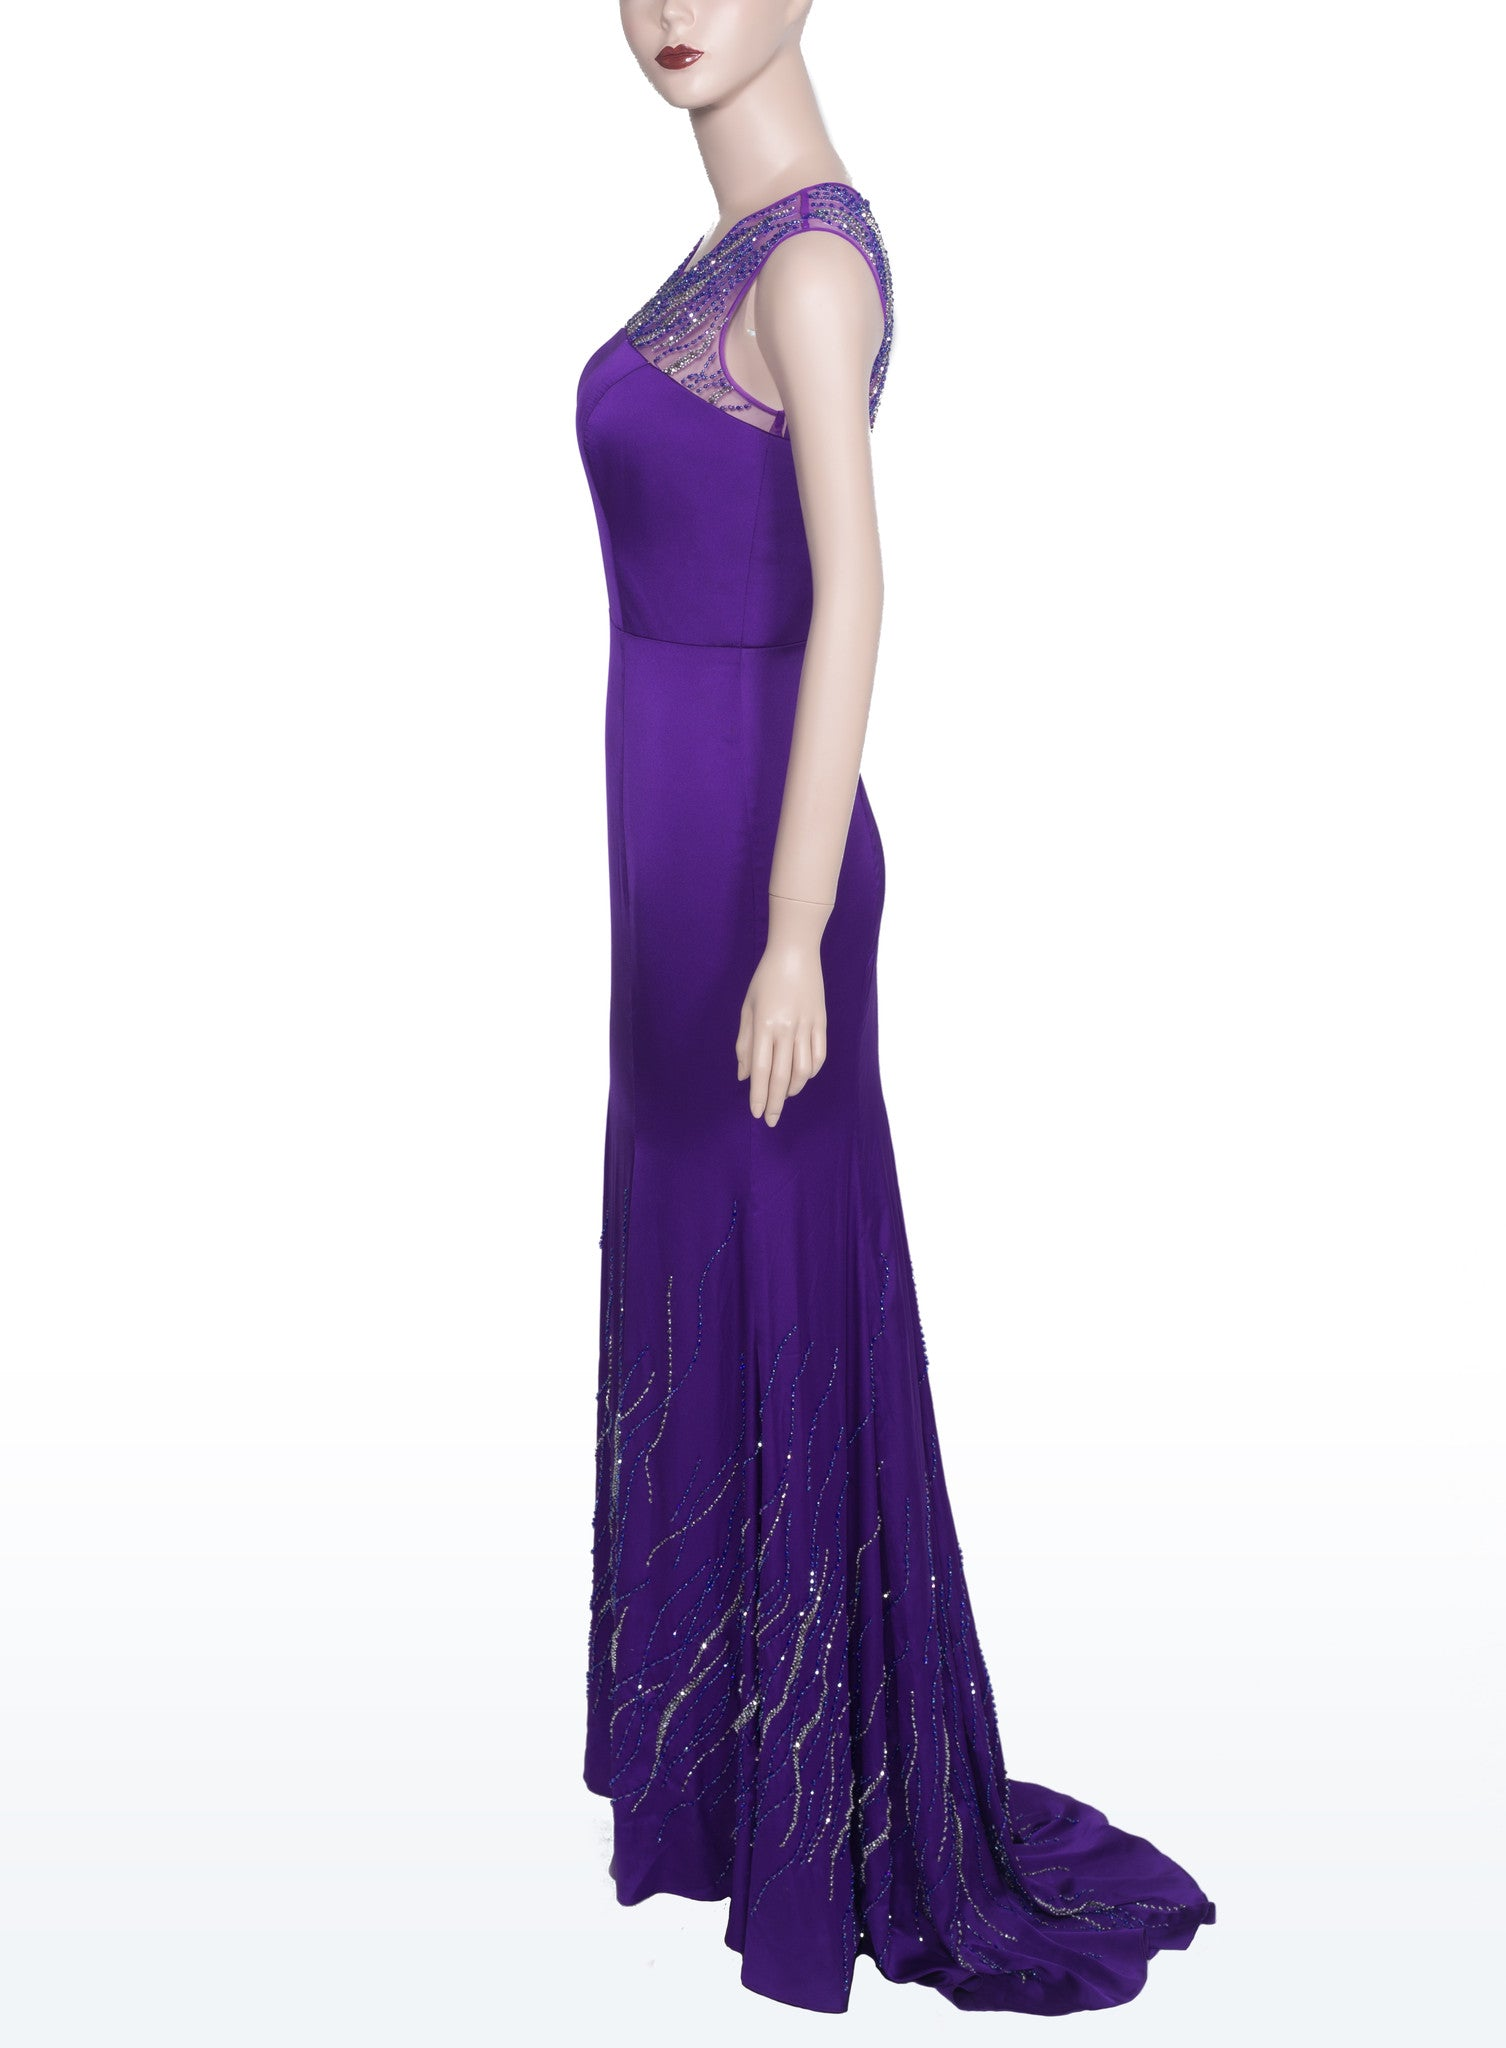 Purple Bead-embellished Dress (#Nicolle) - Dream Dresses by P.M.N  - 4